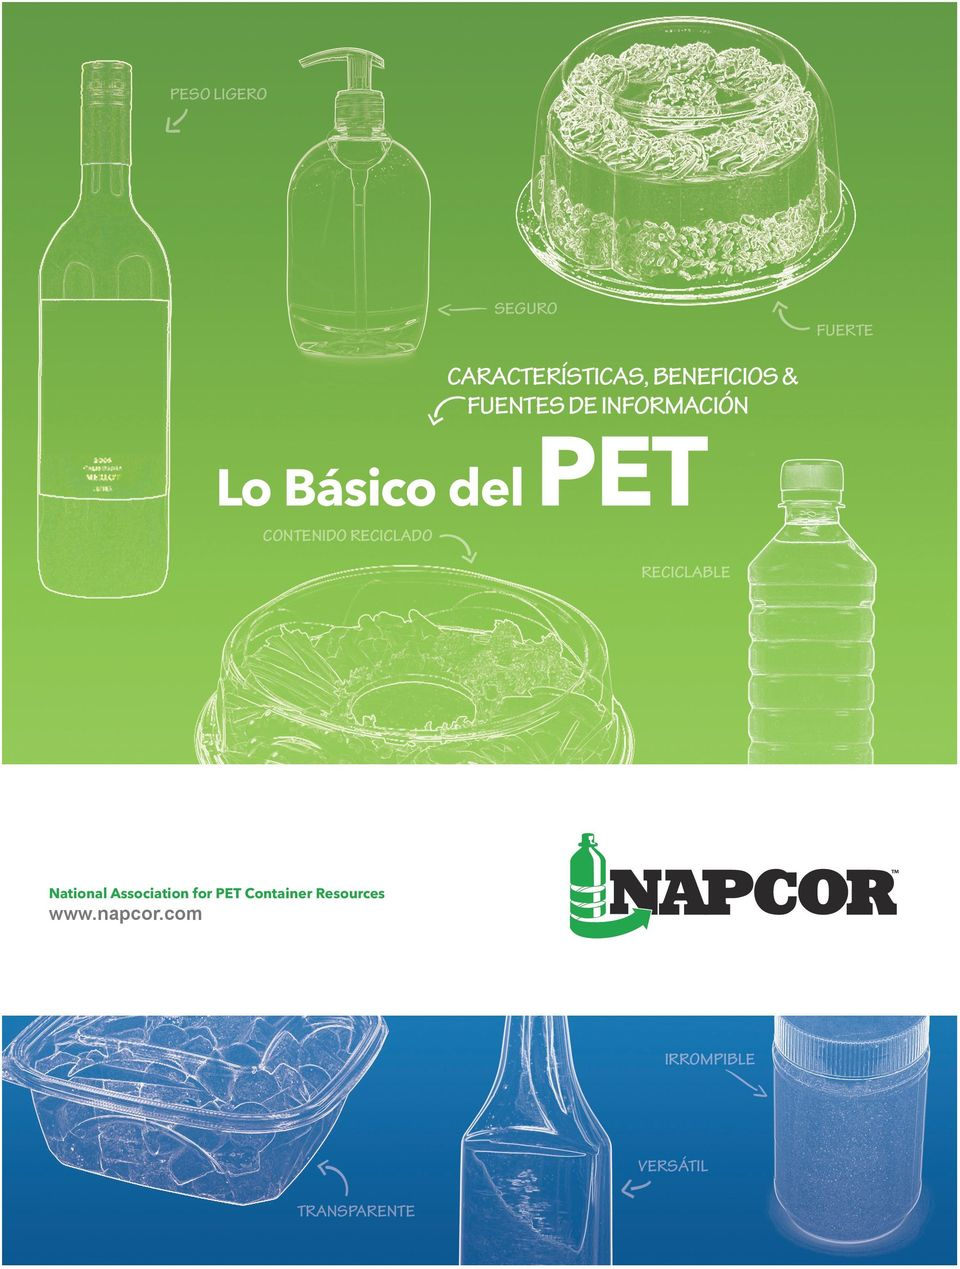 RECICLADO PET RECICLABLE National Association for PET